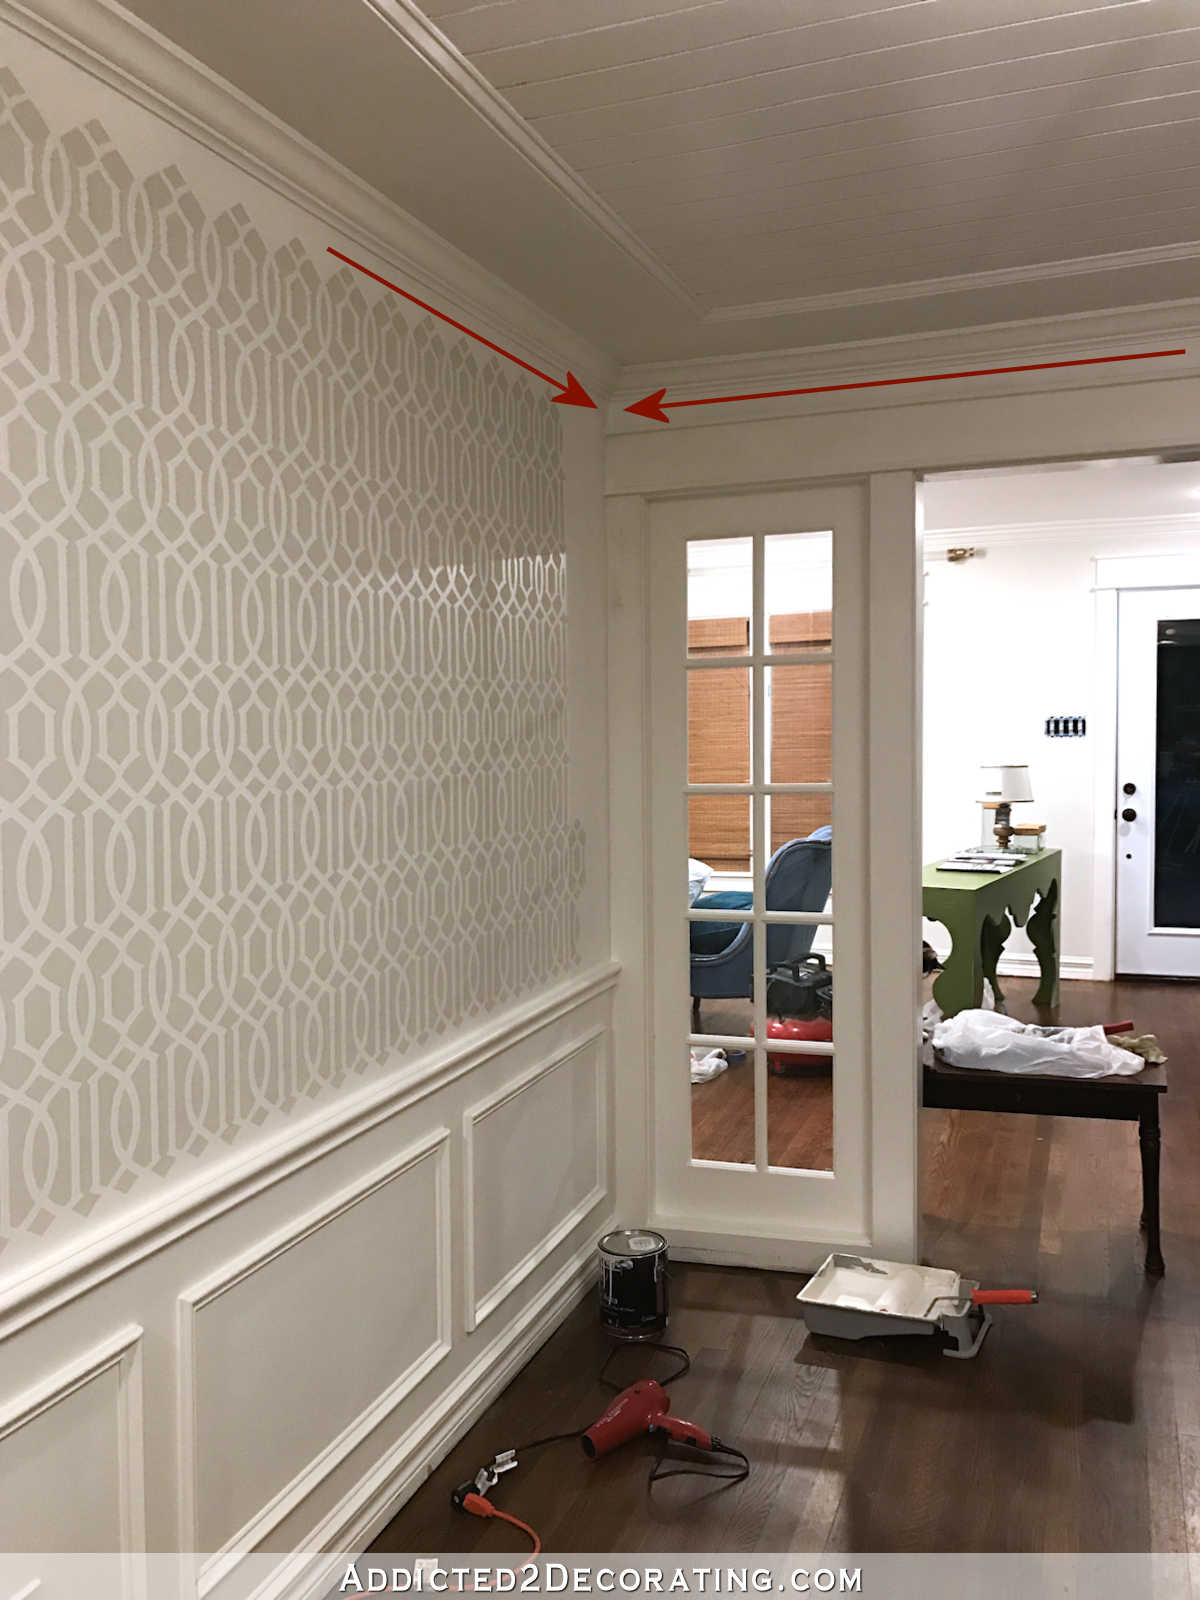 stenciled trellis design in Behr Polar Bear and Benjamin Moore Classic Gray on music room walls - 7